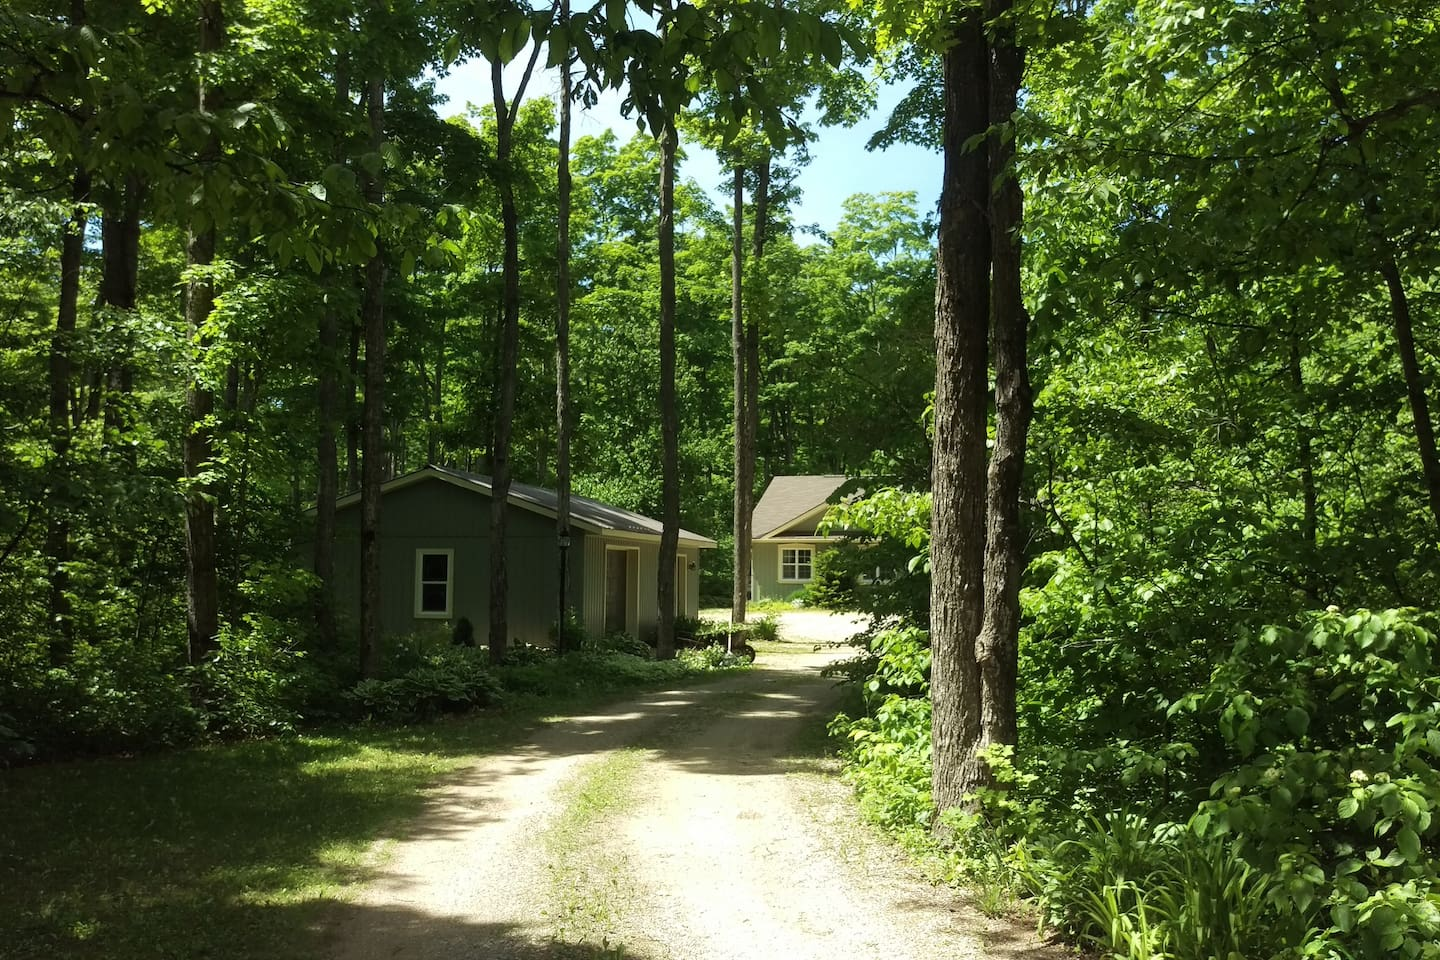 Our home nestled in the trees.